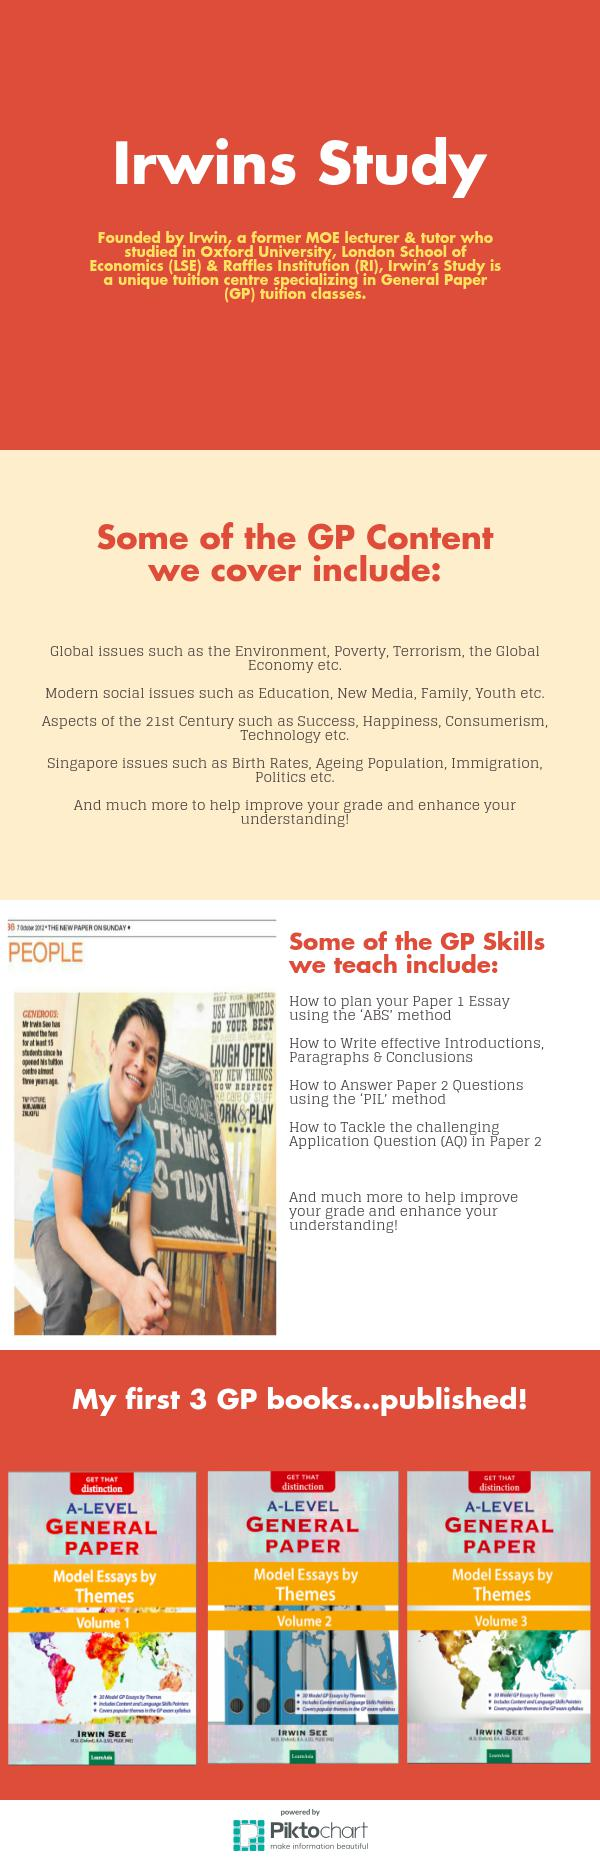 ageing population in singapore essay